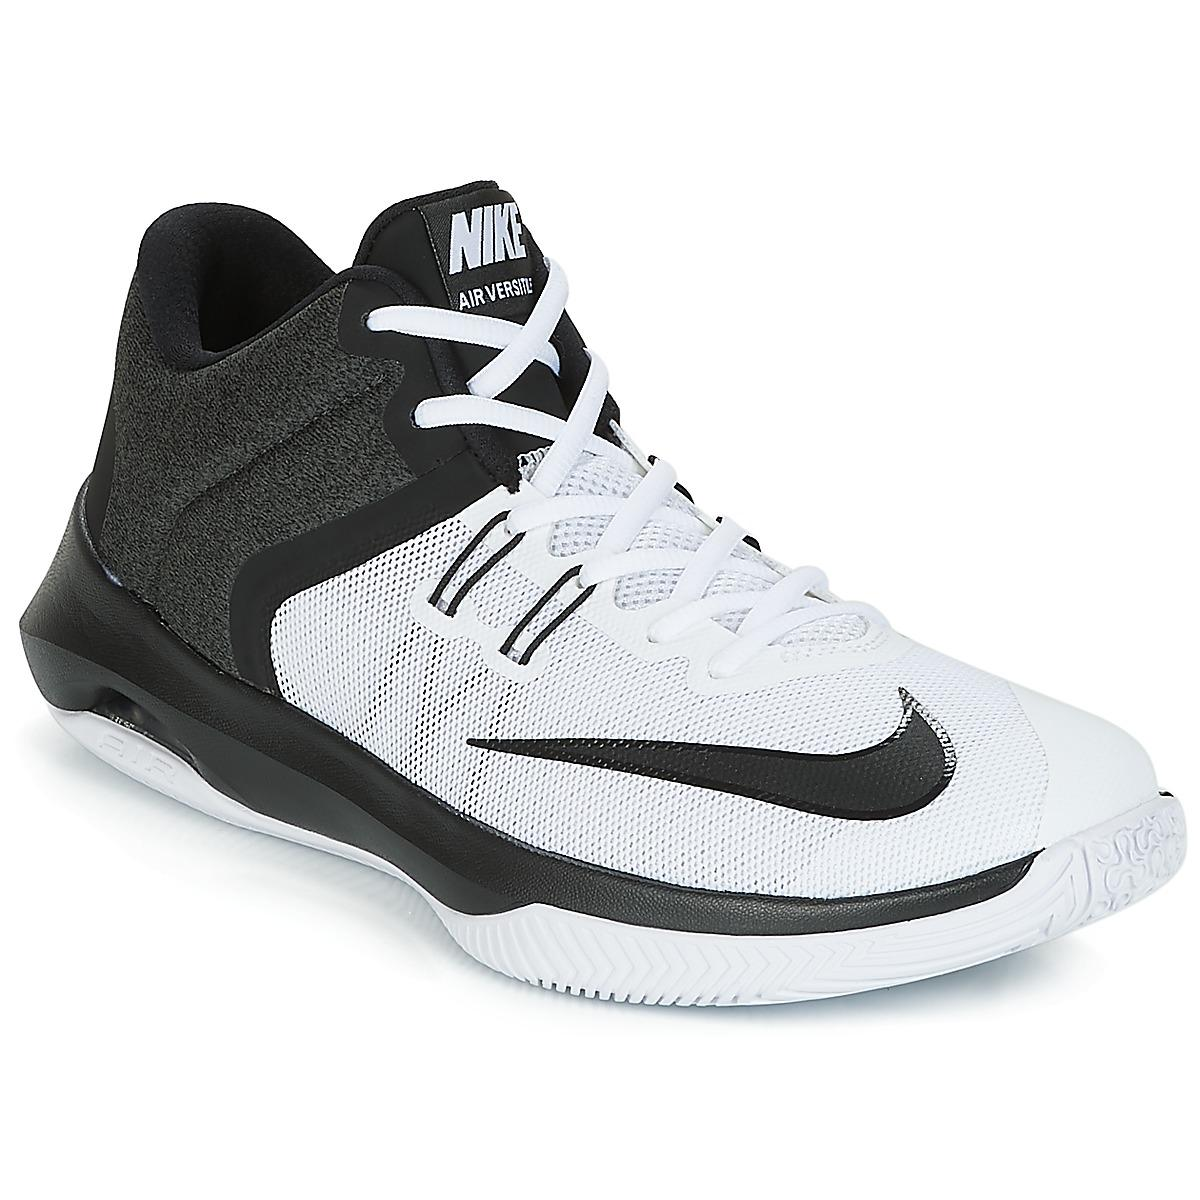 finest selection 58fa7 f4e5c Nike Air Versitile Ii Men s Basketball Trainers (shoes) In White in ...